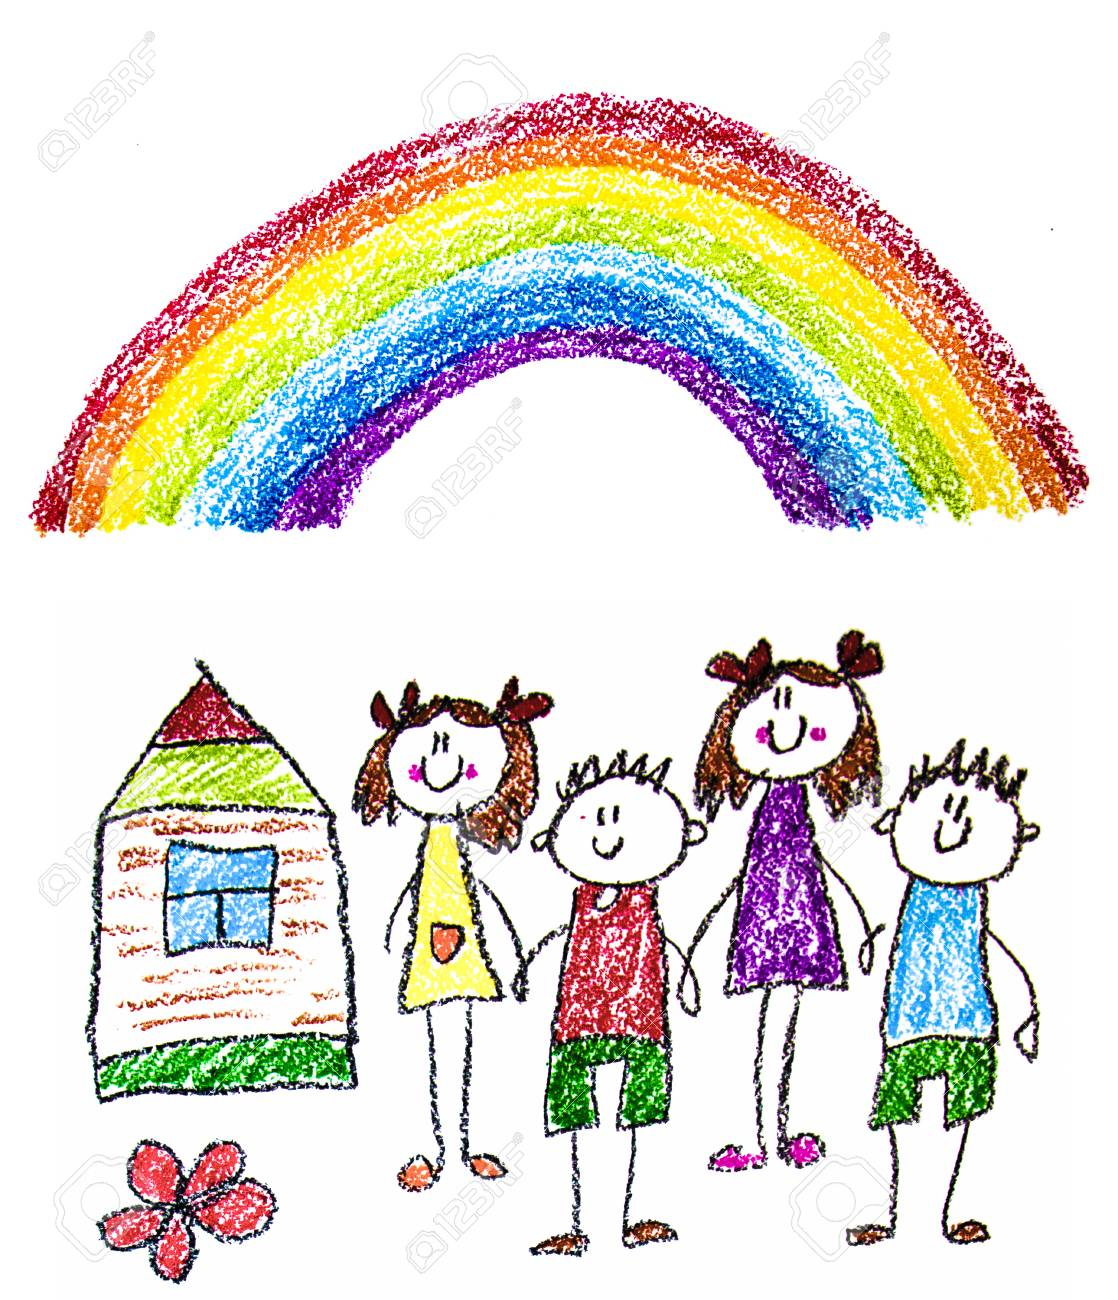 Kids Drawing Image Little Children Boys And Girls School Stock Photo Picture And Royalty Free Image Image 122527377